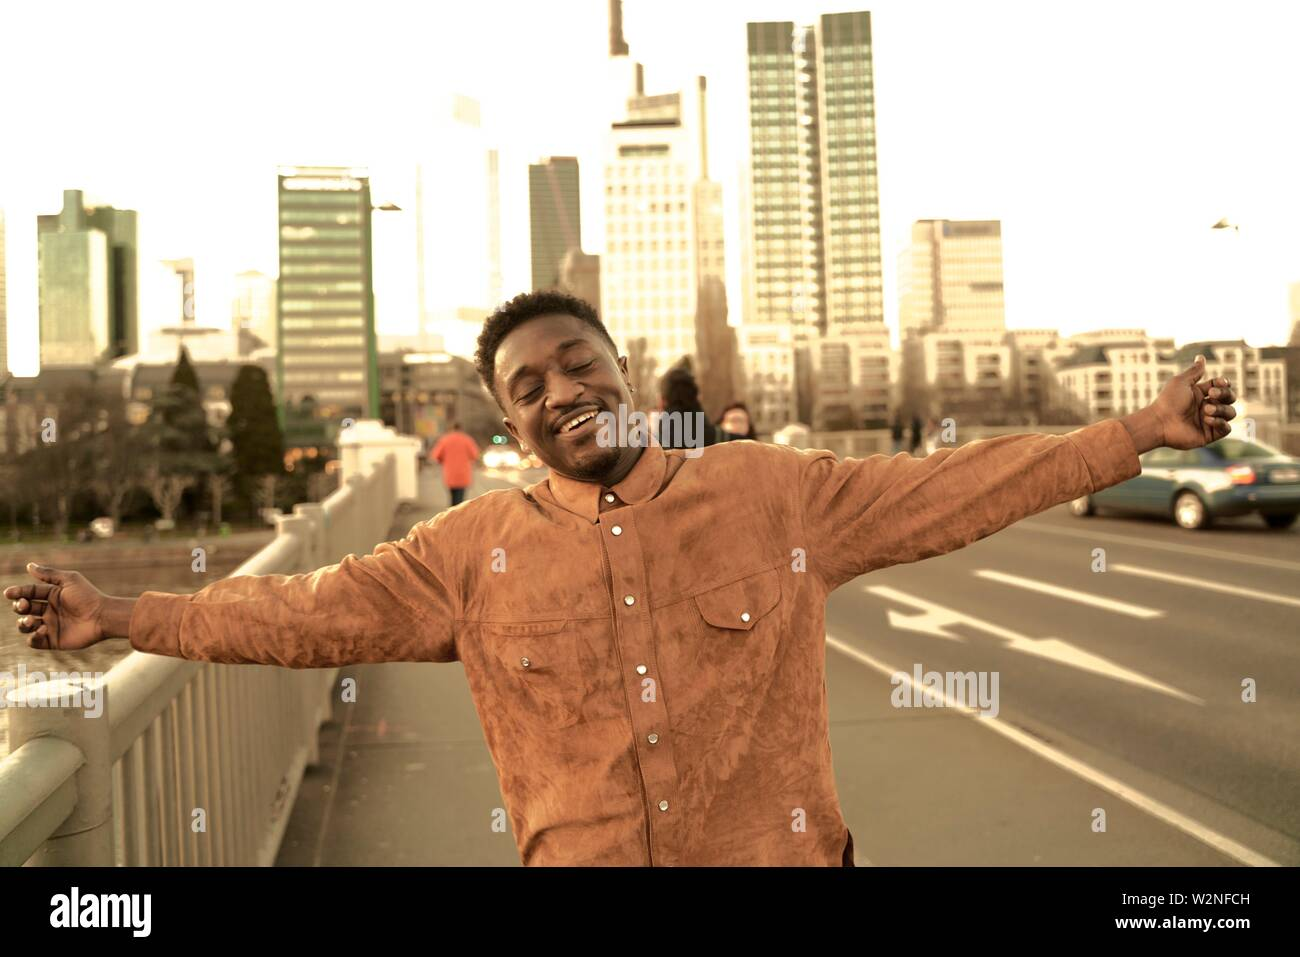 eased African man with open arms at street in city, carefree, in Frankfurt, Germany. Stock Photo